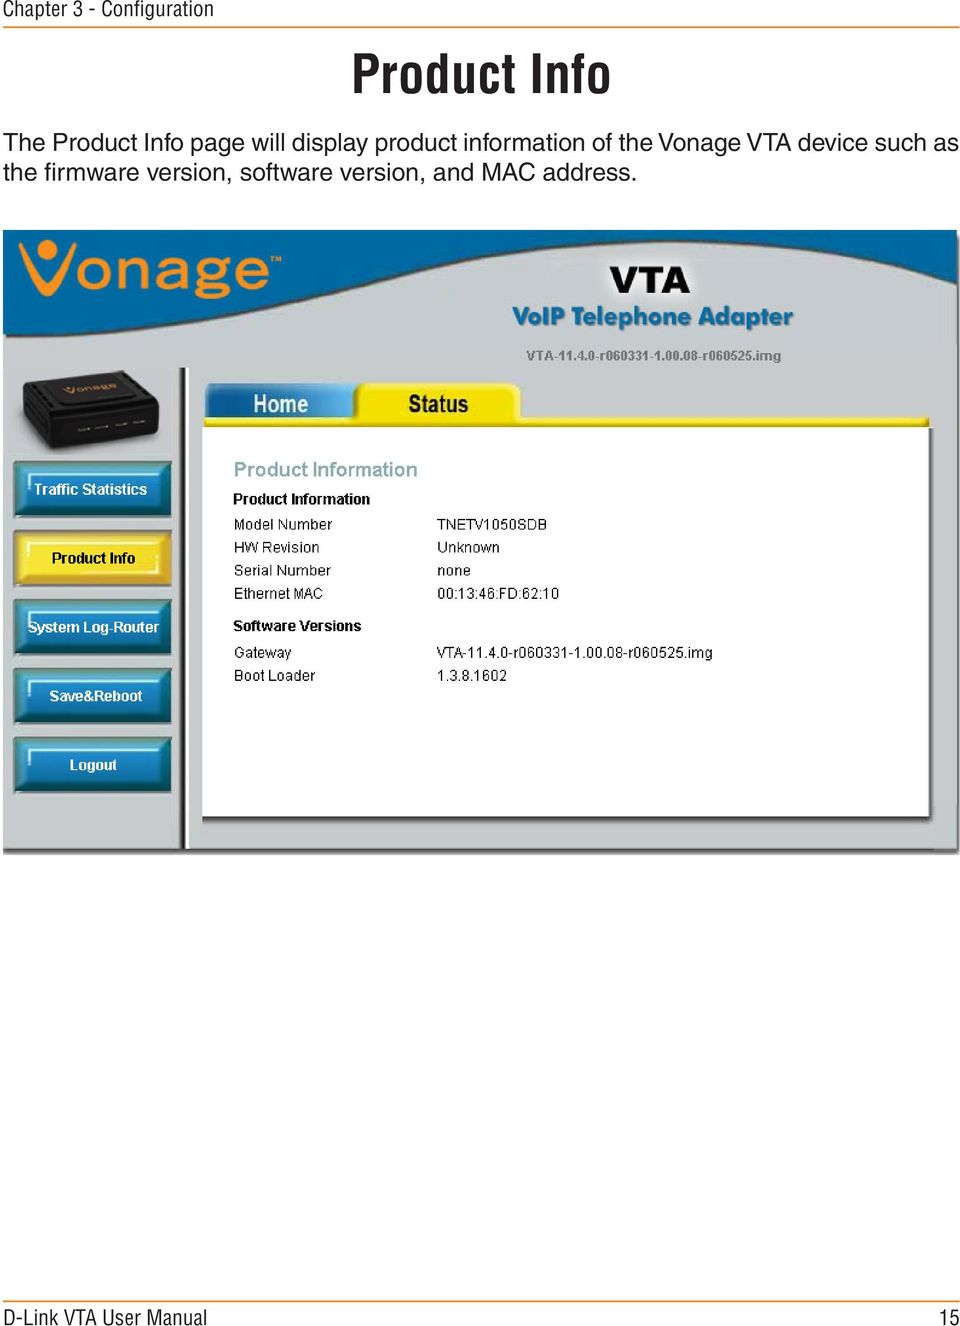 information of the Vonage VTA device such as